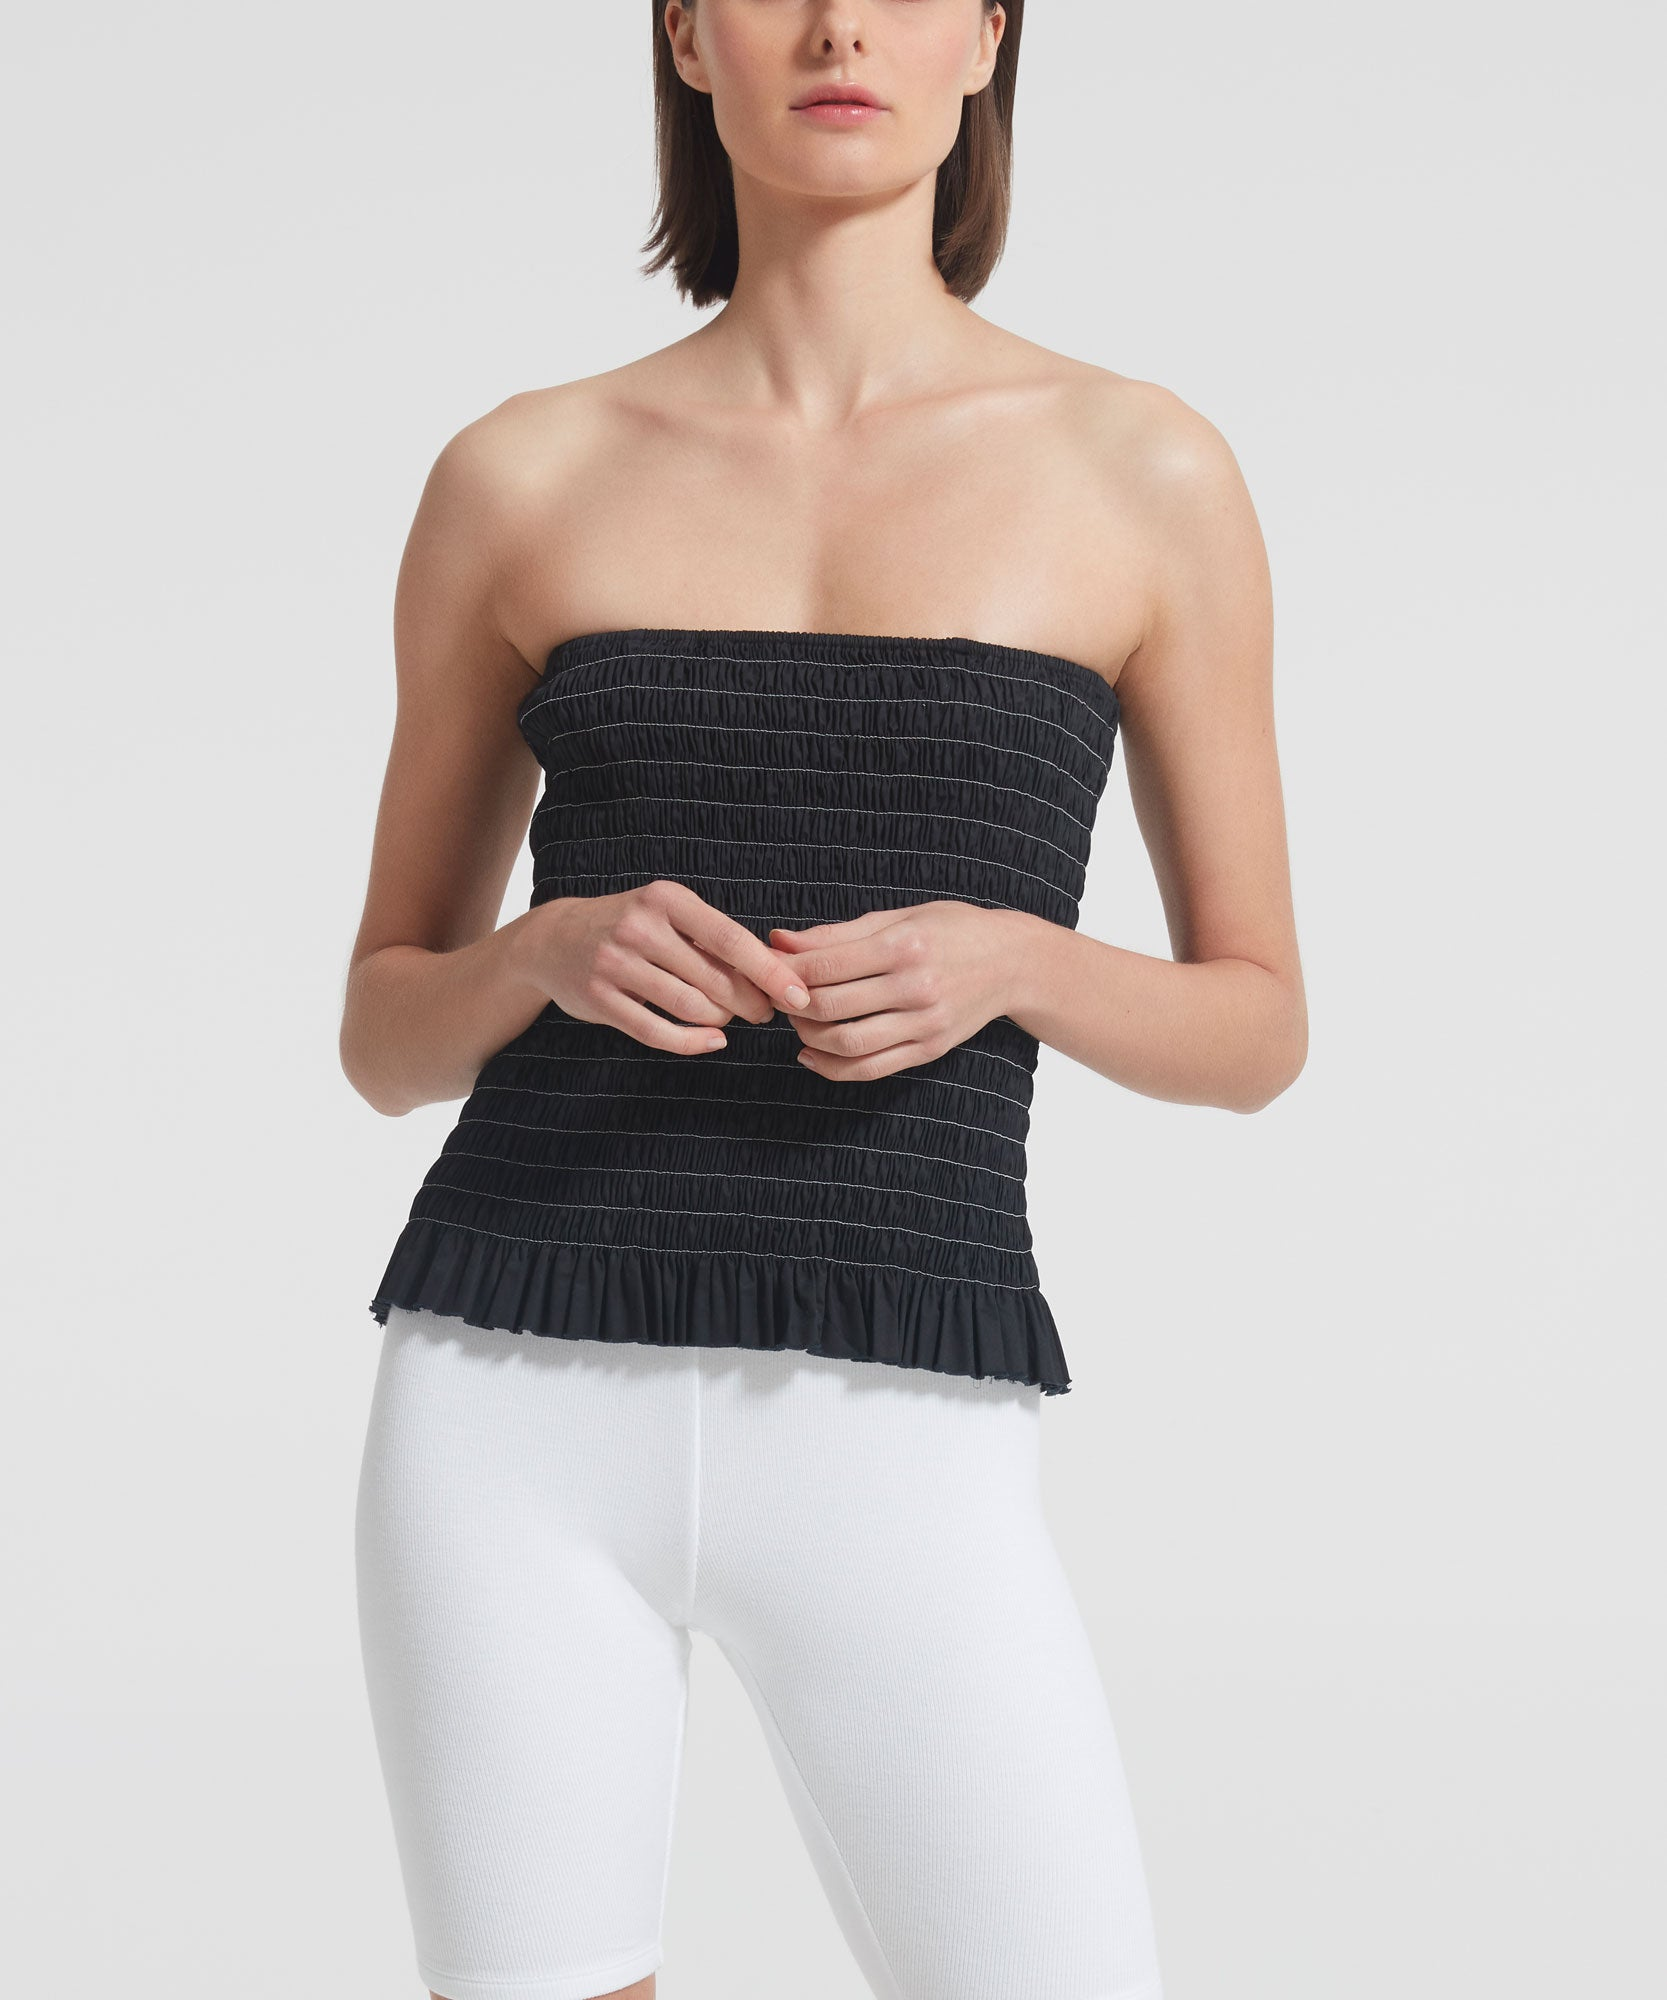 Black Shirred Cotton Poplin Bustier Top - Women's Cotton Poplin Strapless Top by ATM Anthony Thomas Melillo